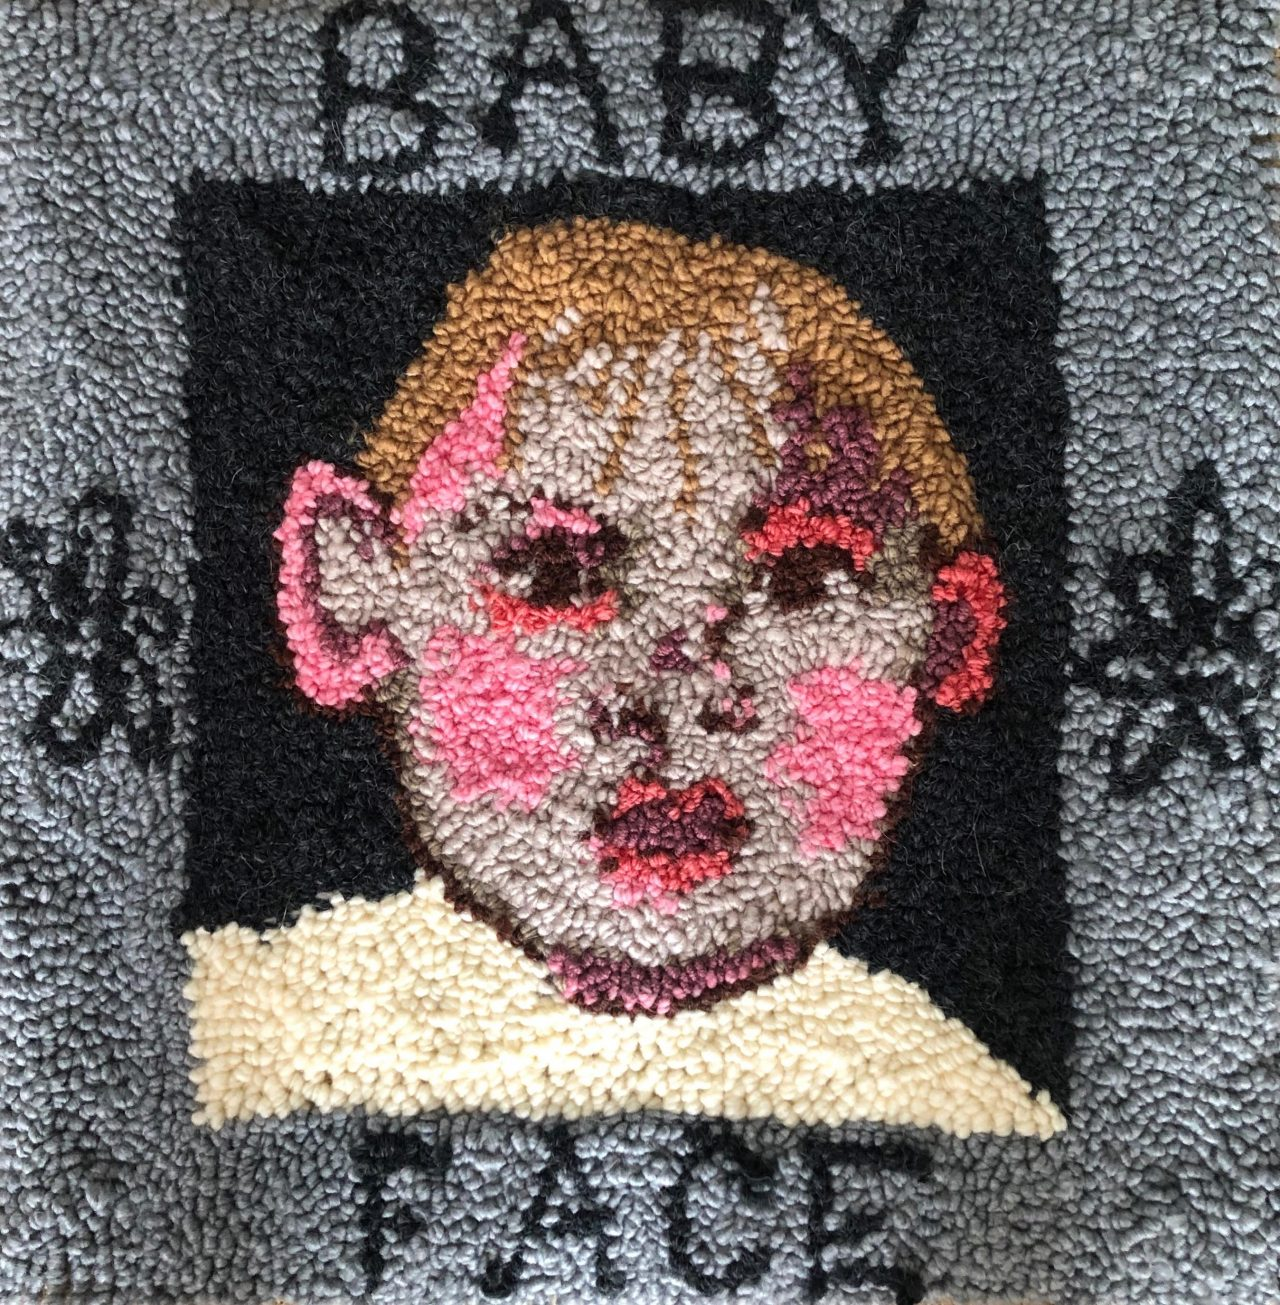 textile art of a small male childs face with words 'baby face' by Selby Hurst Inglefield